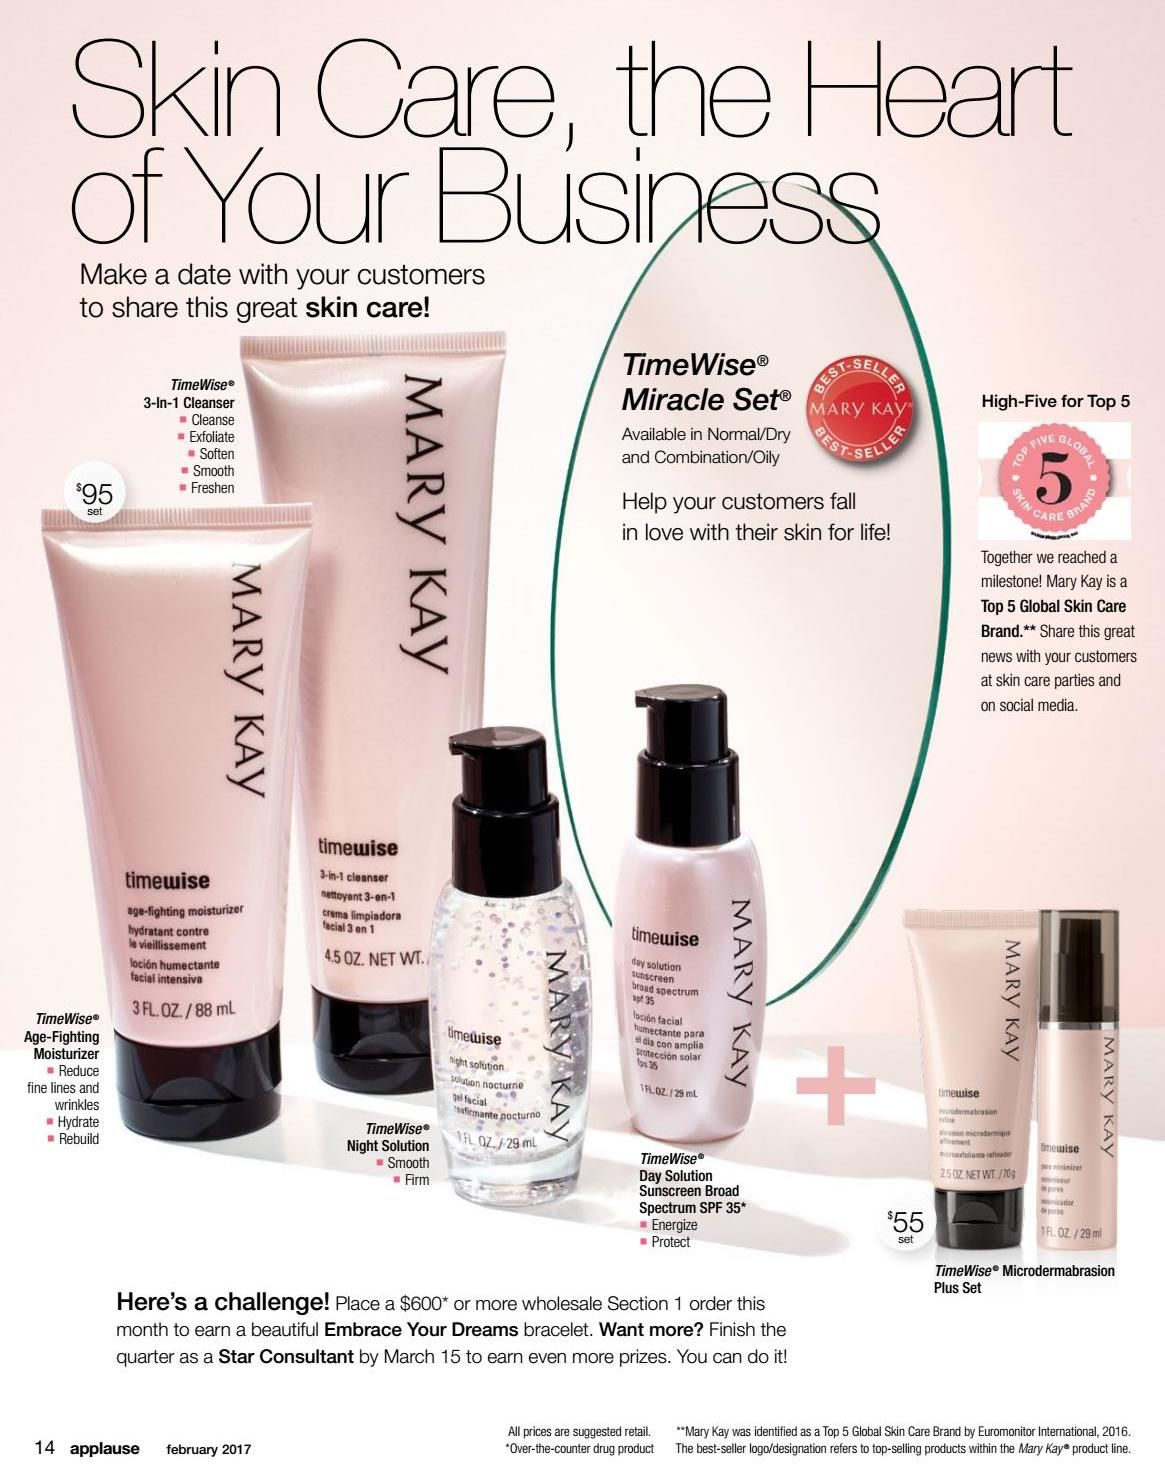 Applause February 2017 Top Skin Care Products Timewise Miracle Set Mary Kay